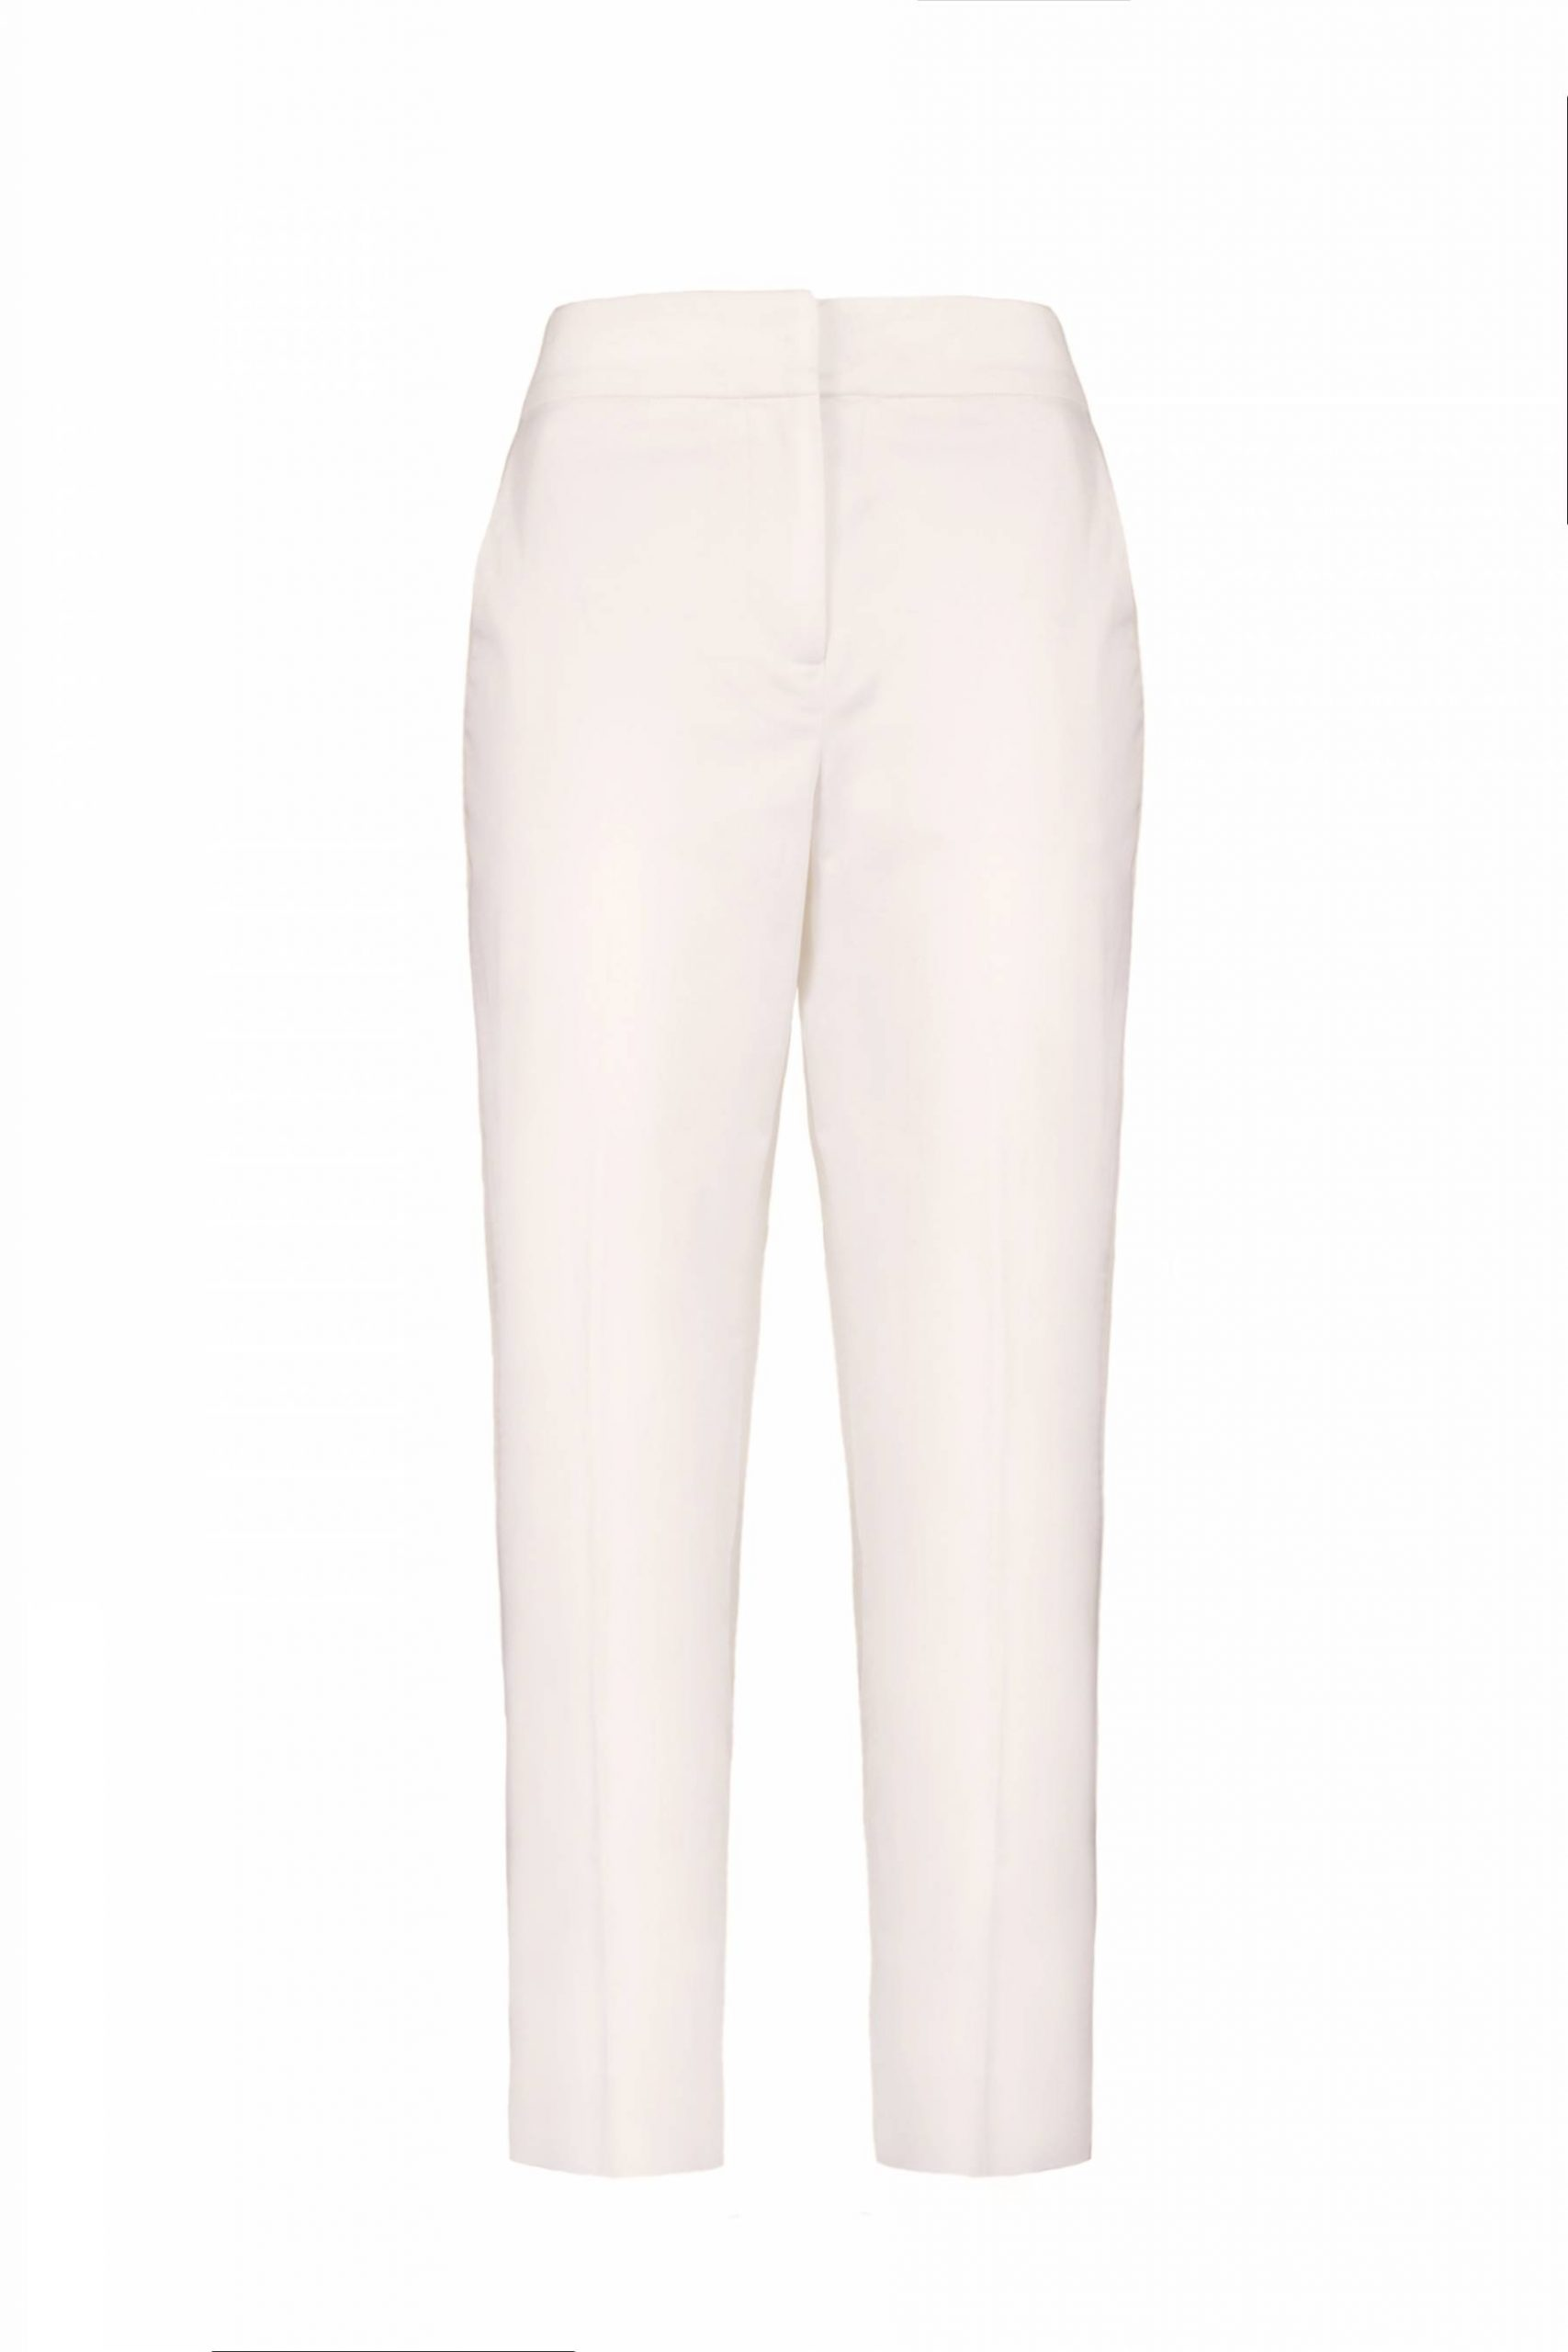 Soft Beige Capri Pants